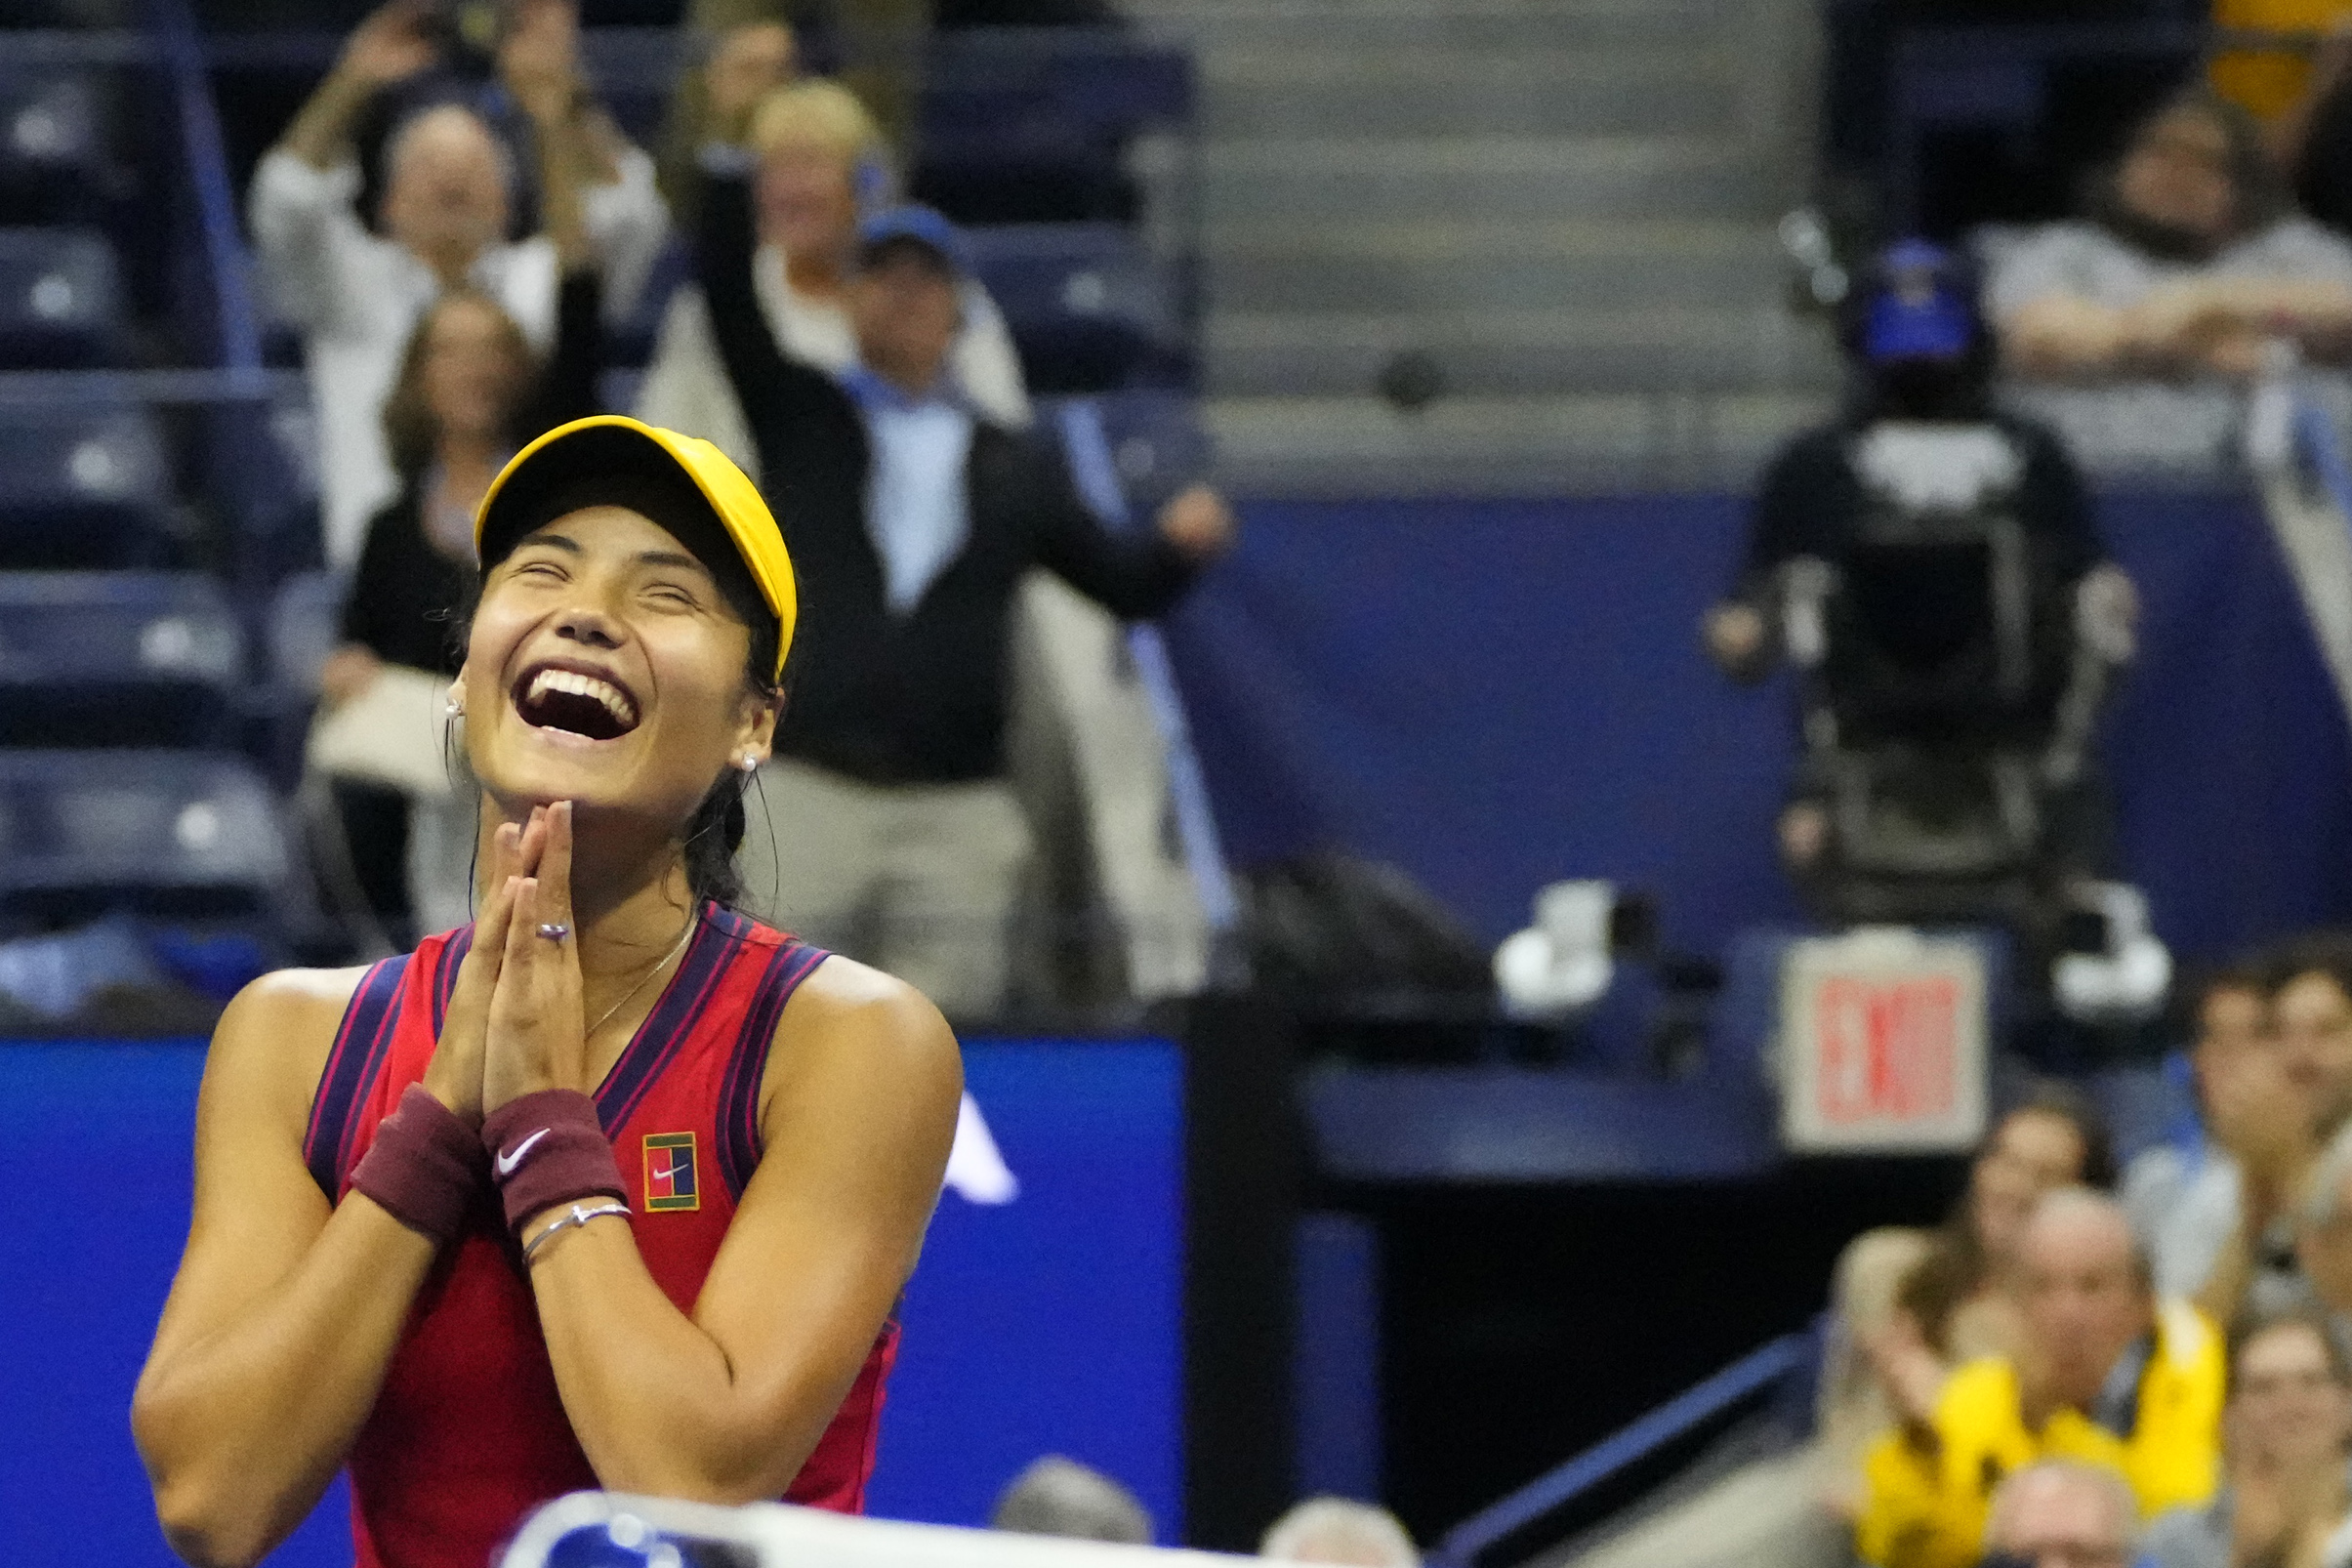 Sep 9, 2021; Flushing, NY, USA; Emma Raducanu of Great Britain celebrates after her match against Maria Sakkari of Greece (not pictured) on day eleven of the 2021 U.S. Open tennis tournament at USTA Billie Jean King National Tennis Center. Mandatory Credit: Robert Deutsch-USA TODAY Sports